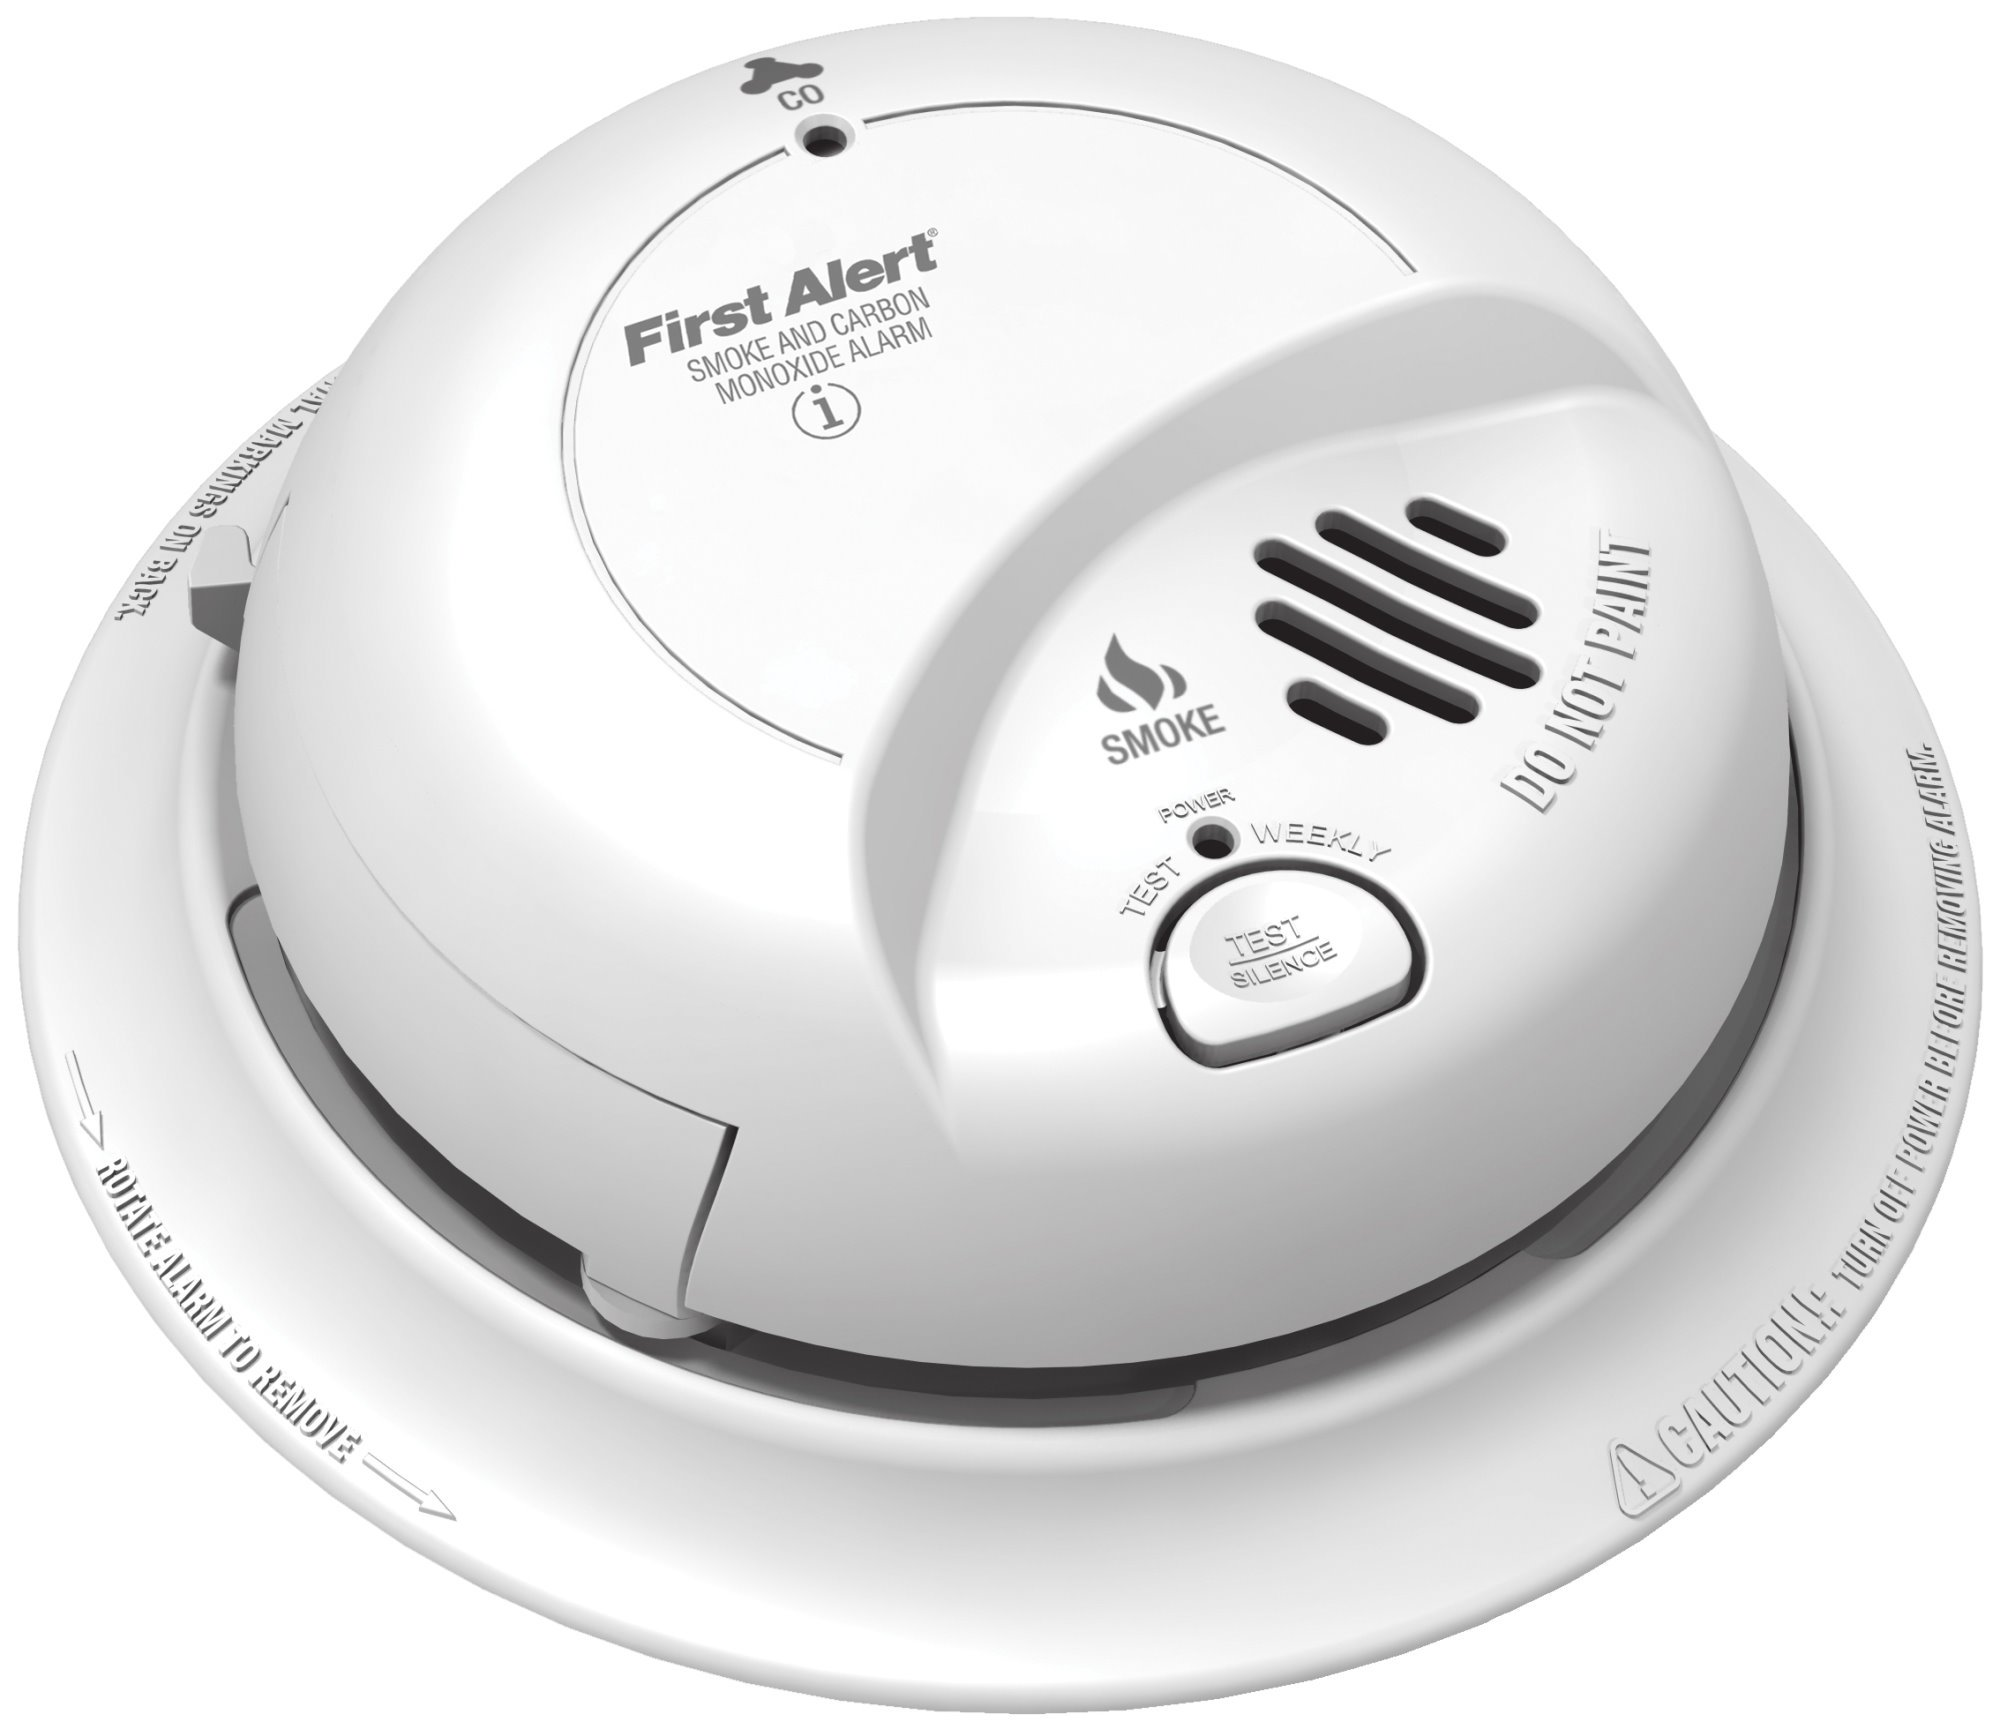 First Alert SC9120B Hardwire Combination Smoke/Carbon Monoxide Alarm with Battery Backup (6 Pack) by First Alert